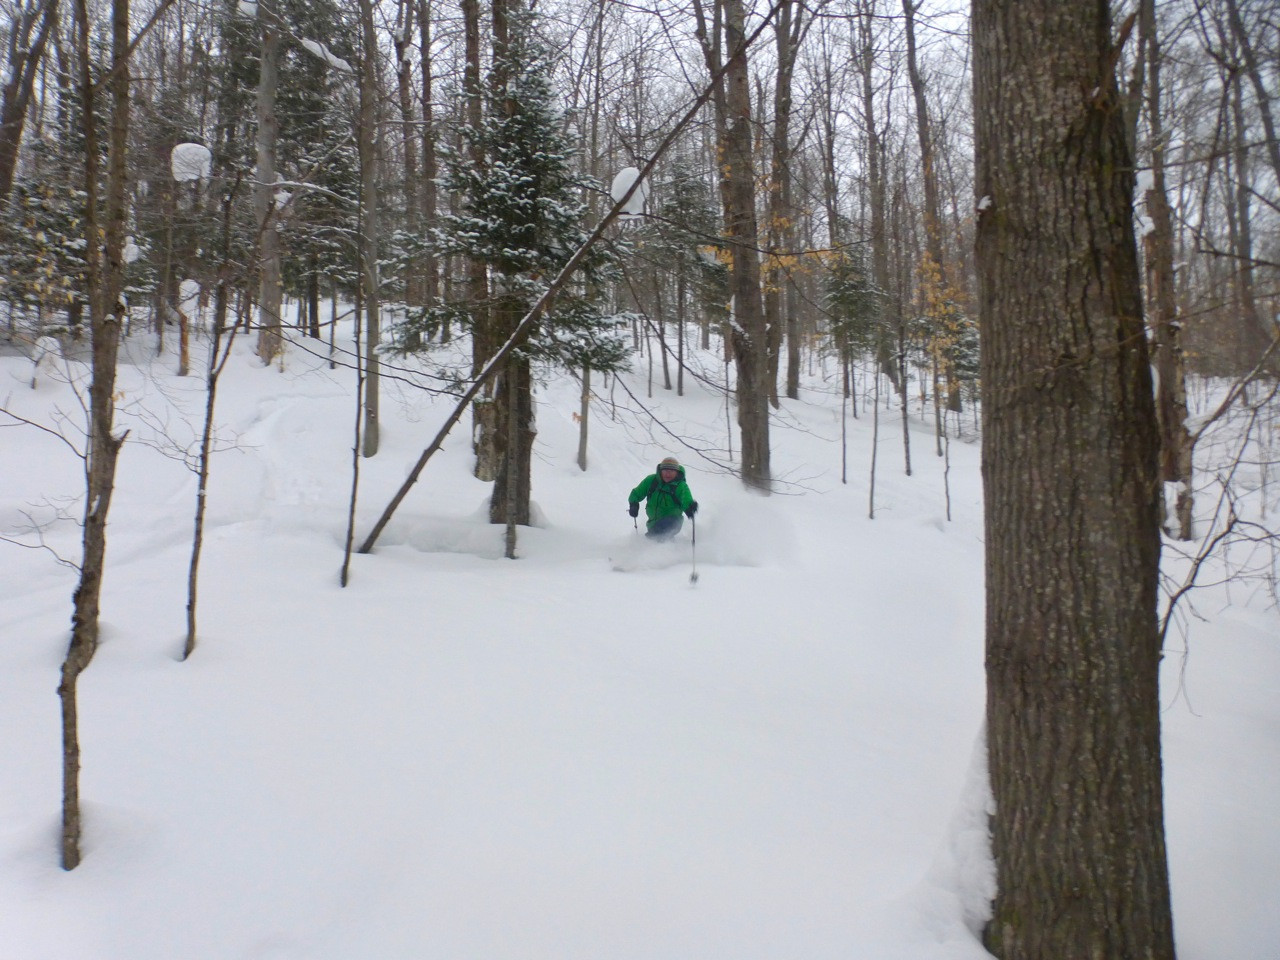 Skiing in Ontario